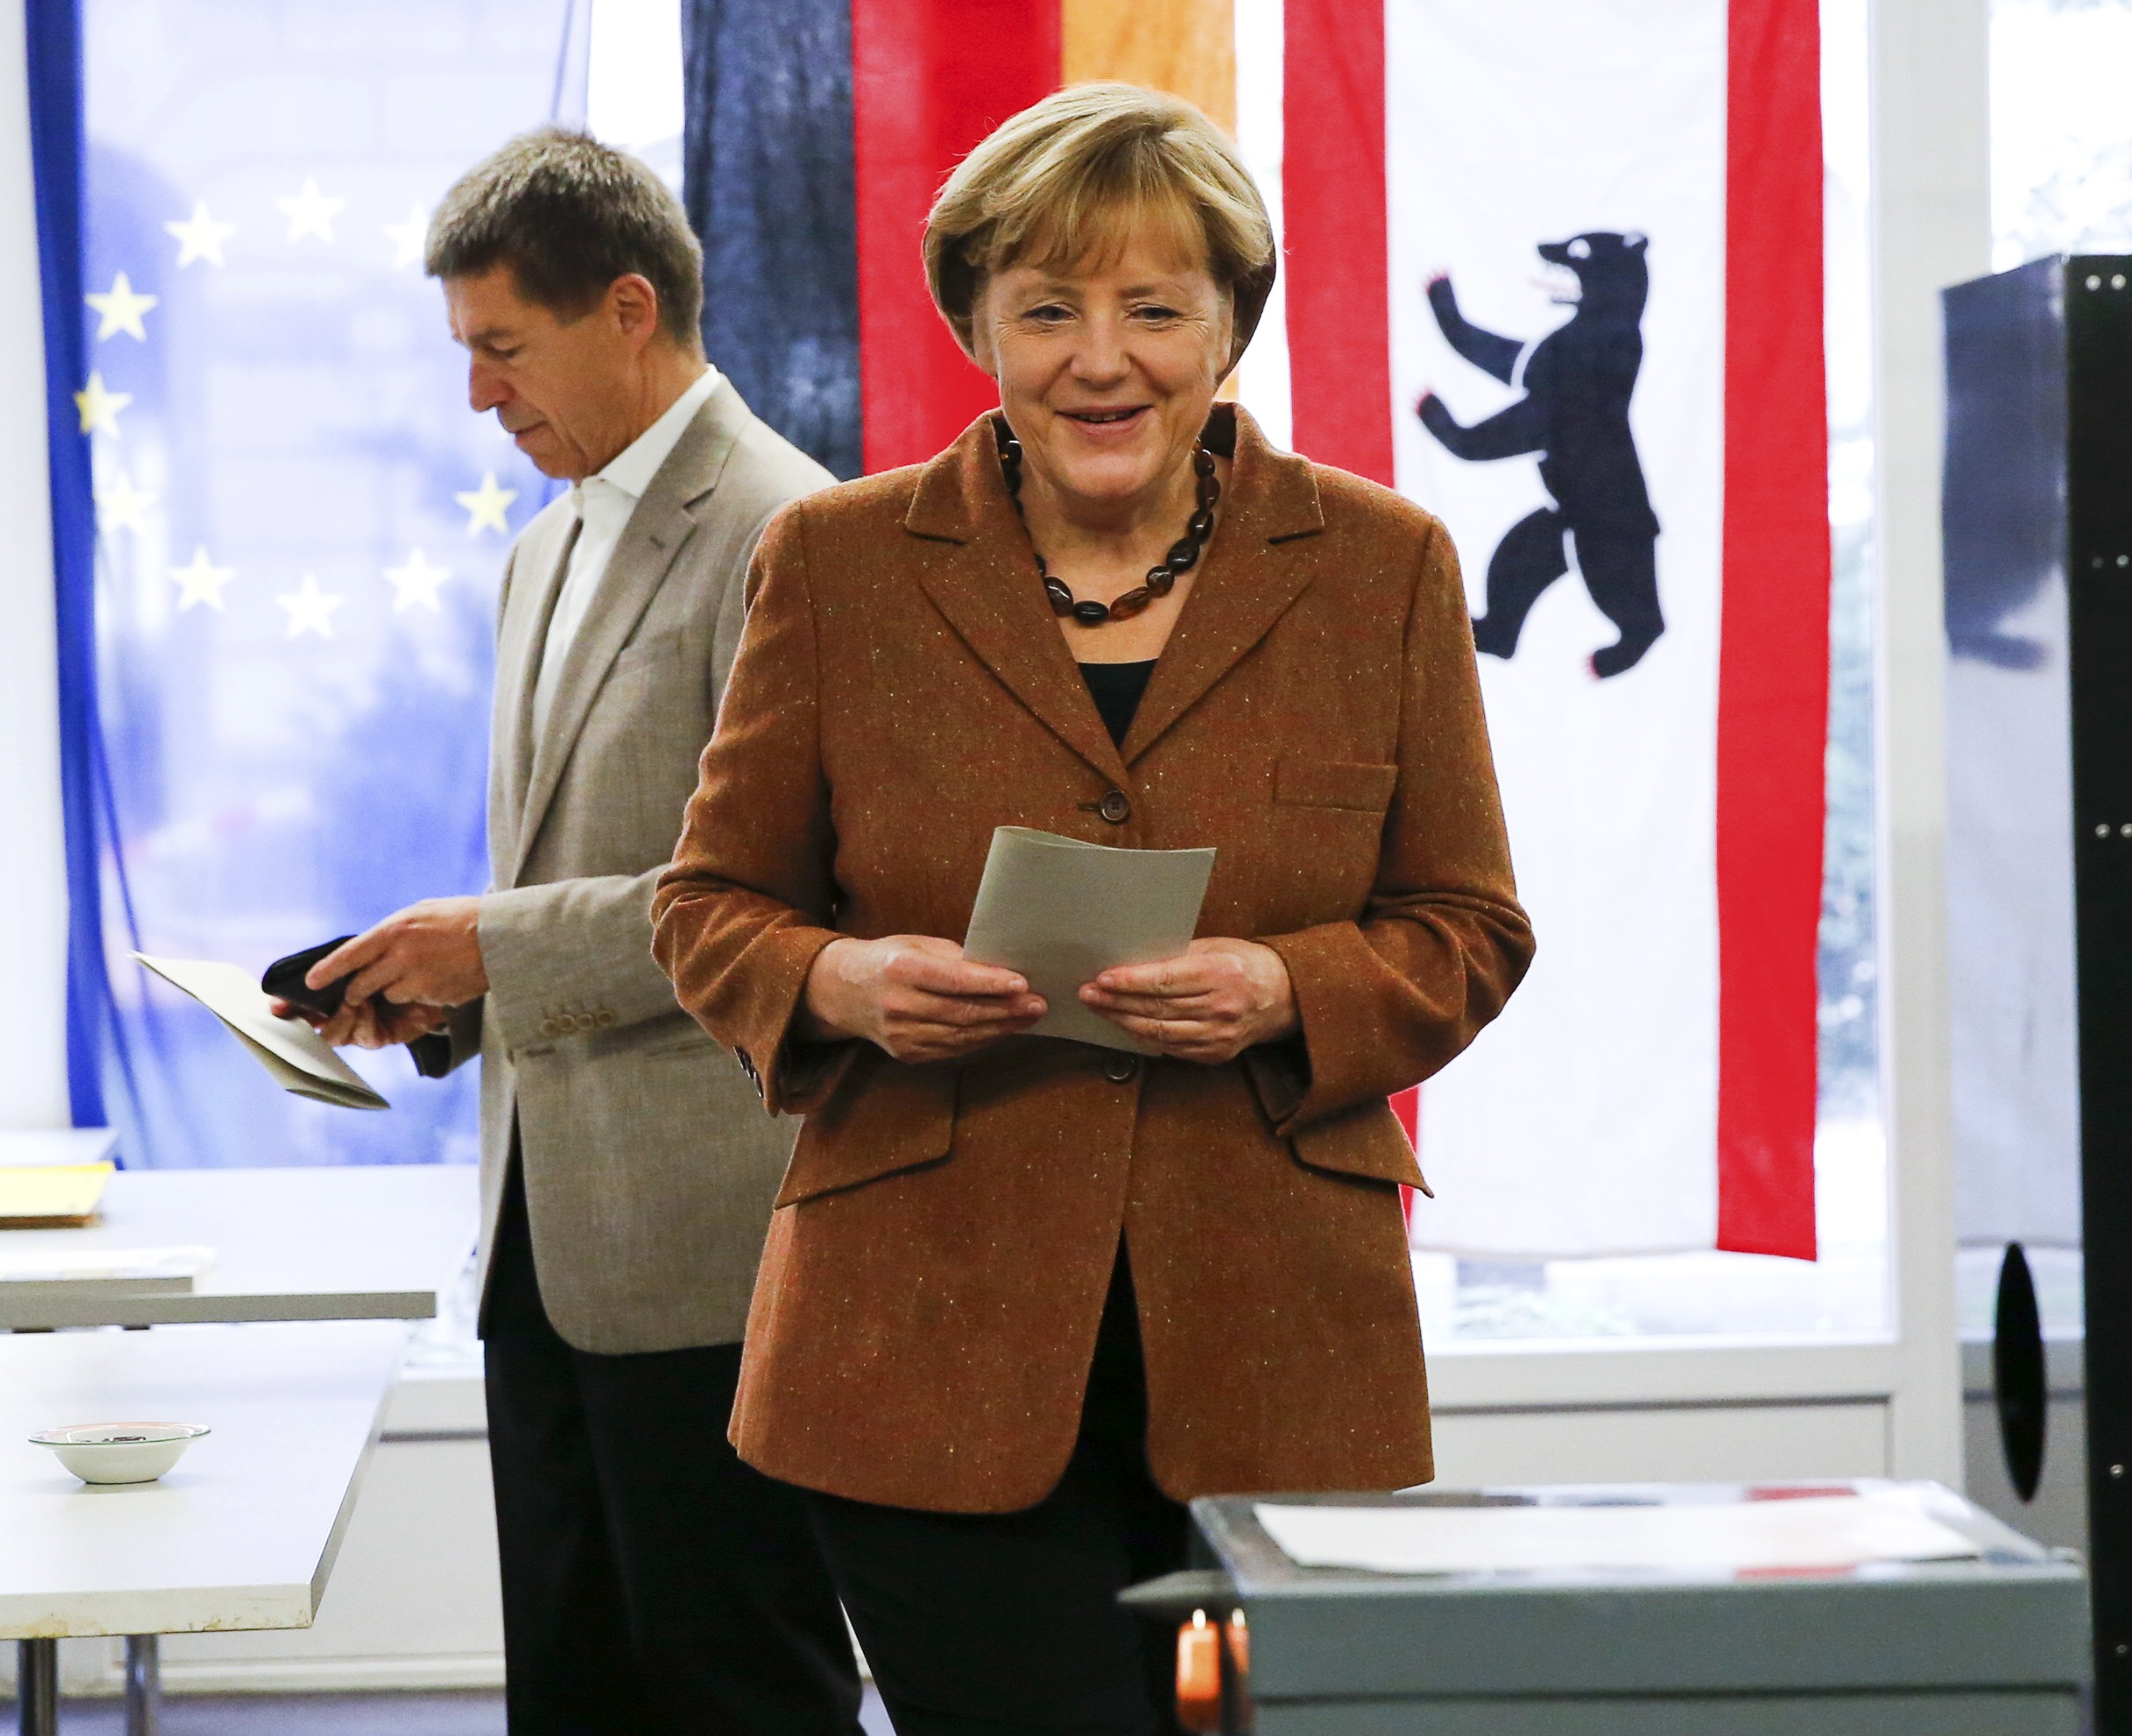 Merkel wins in Germany, 'grand coalition' likely: exit polls